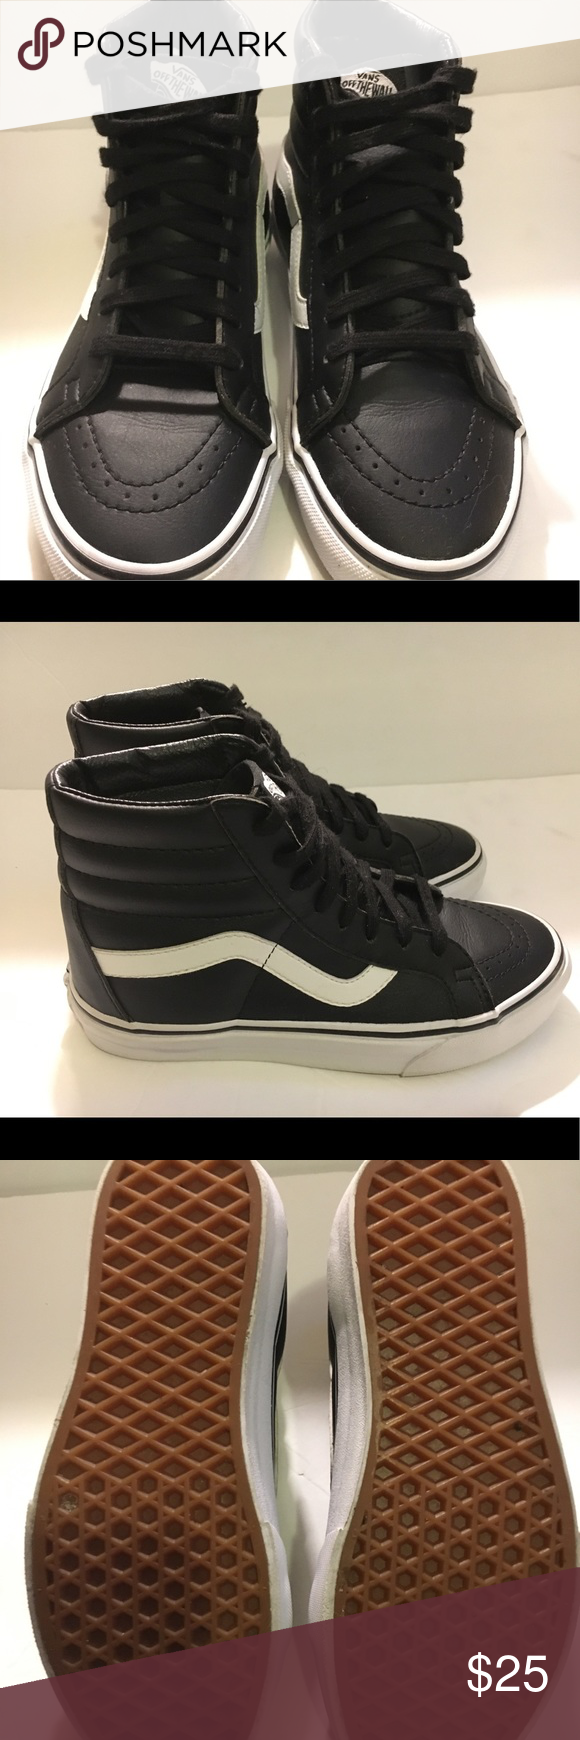 Vans black leather with the white size 4 1 2 Black and white all leather  vans hightops literally worn once previously owned great condition size 4  1 2 item ... c2d3c5a05